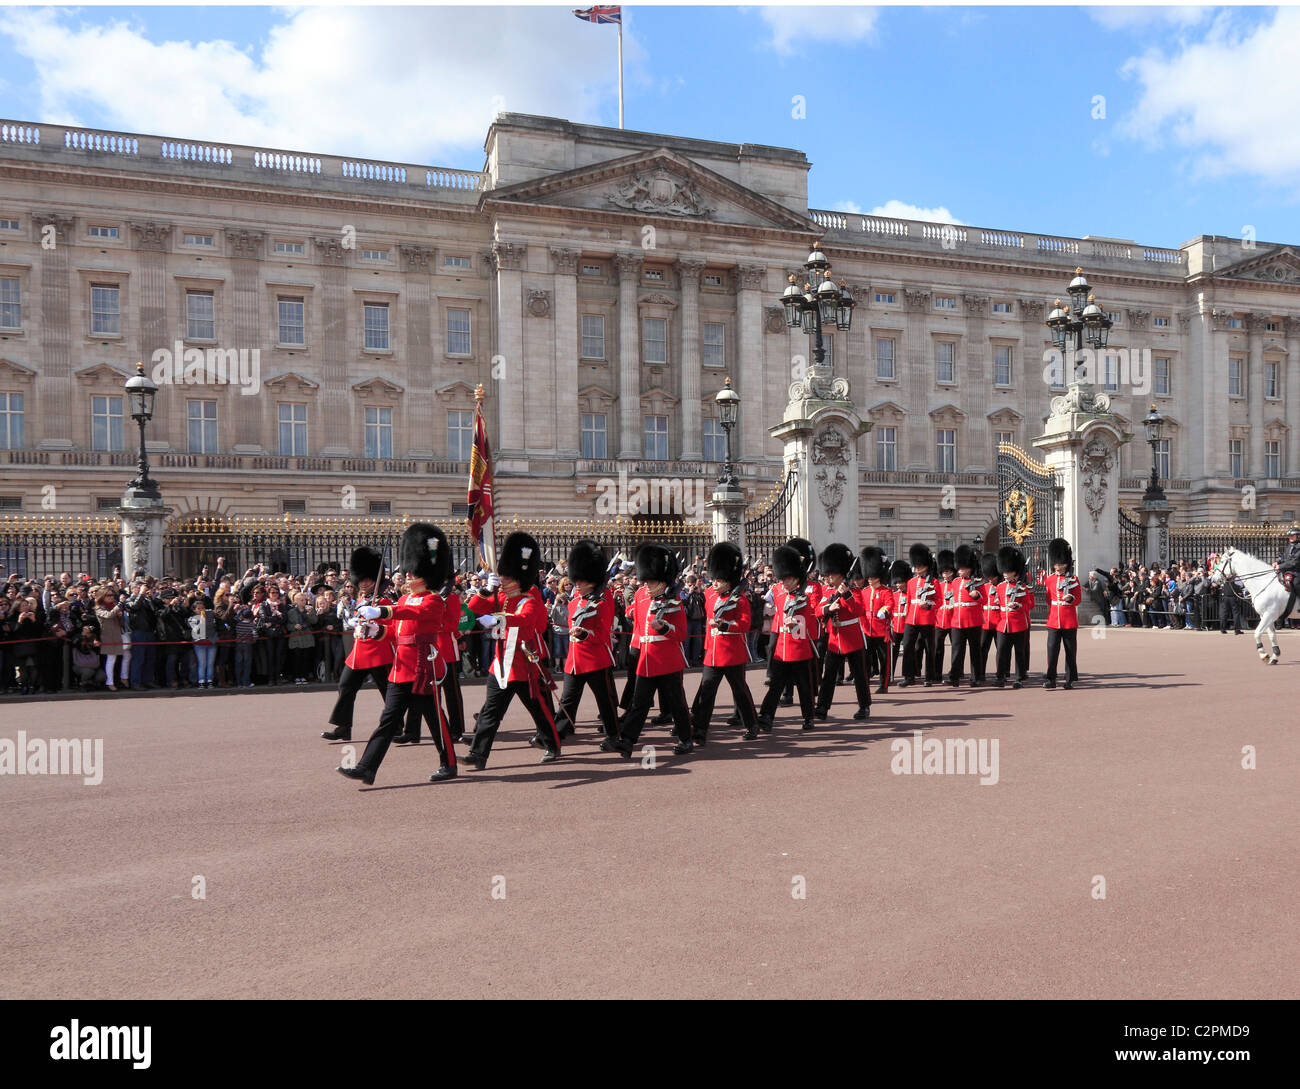 Ändern der Guard am Buckingham Palace in London. Stockbild